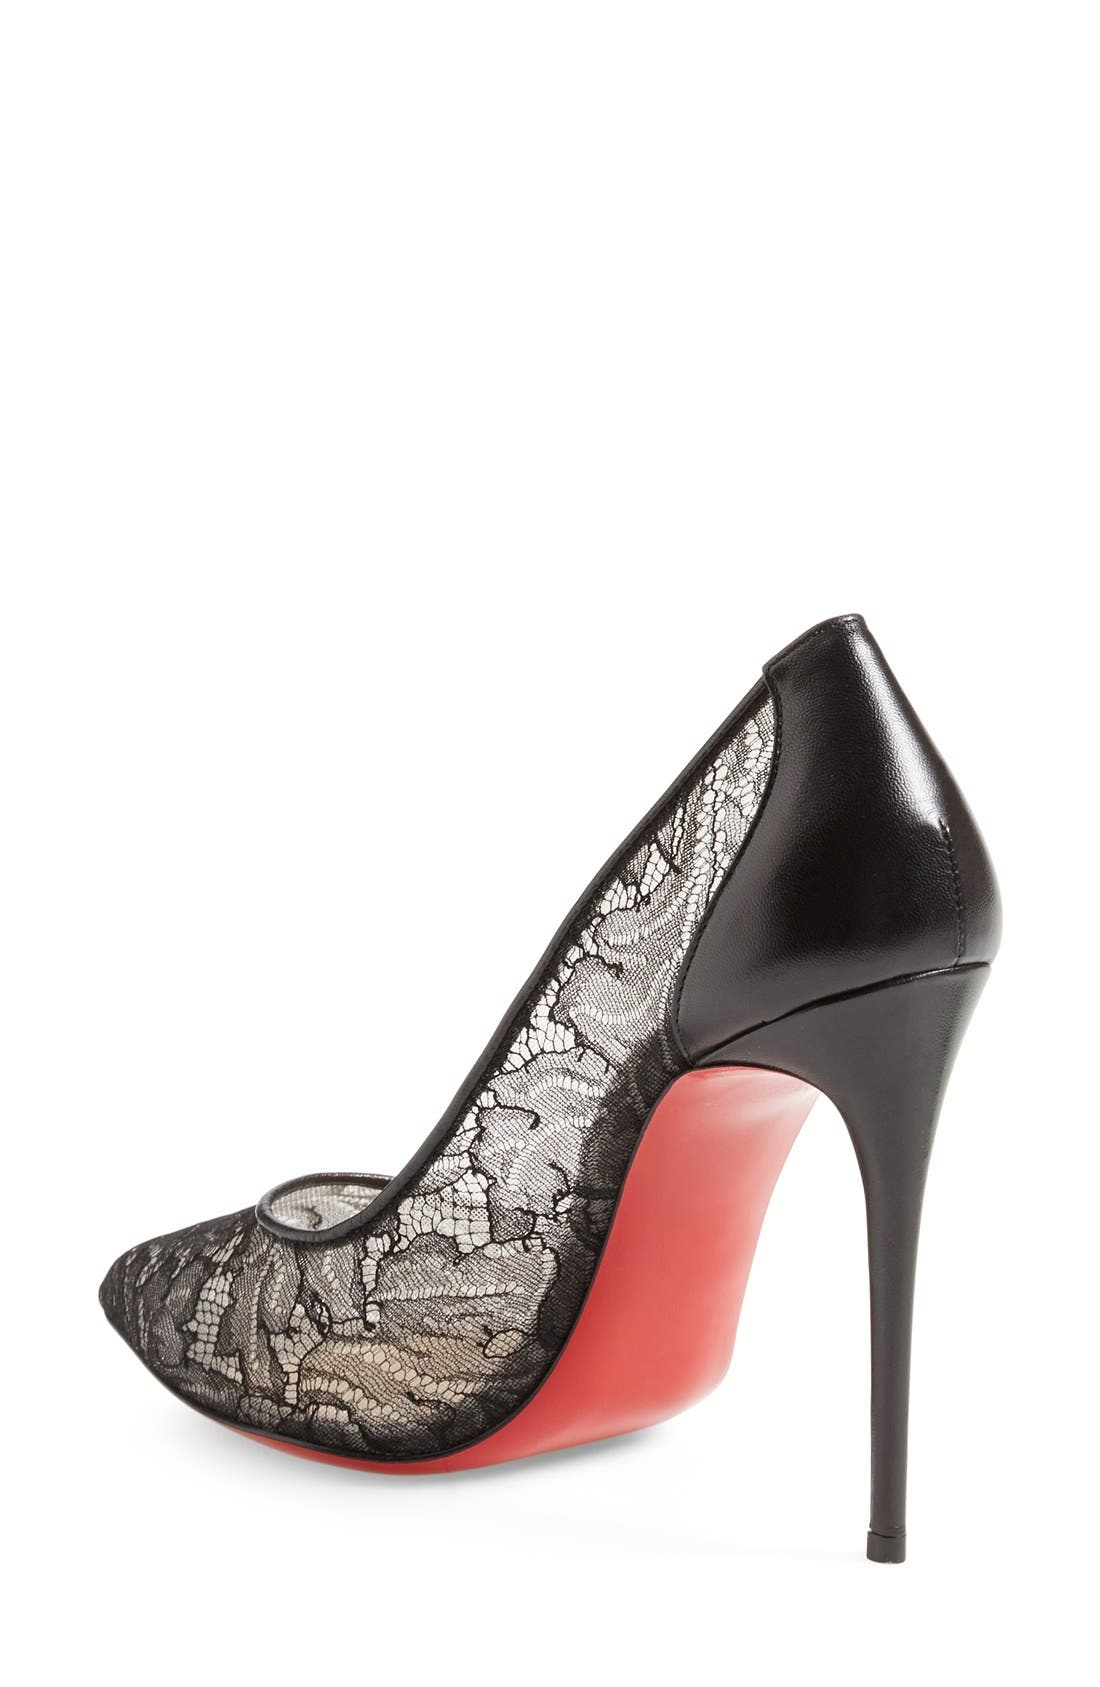 'Follies' Lace Pointy Toe Pump,                             Alternate thumbnail 4, color,                             001